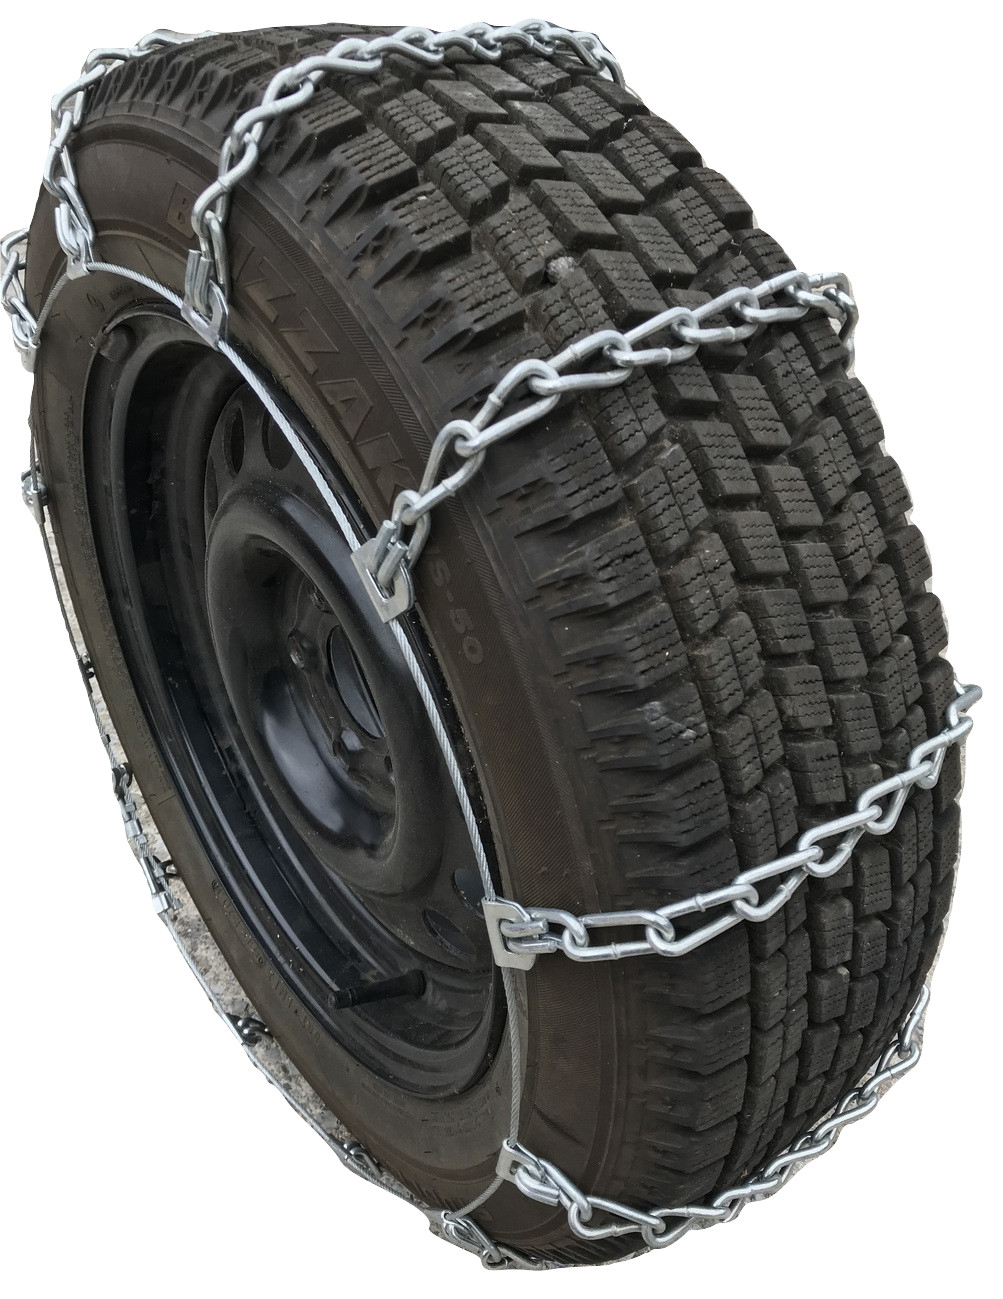 Snow Chains P195/75R15, 195/75-15 Cable Link Tire Chains